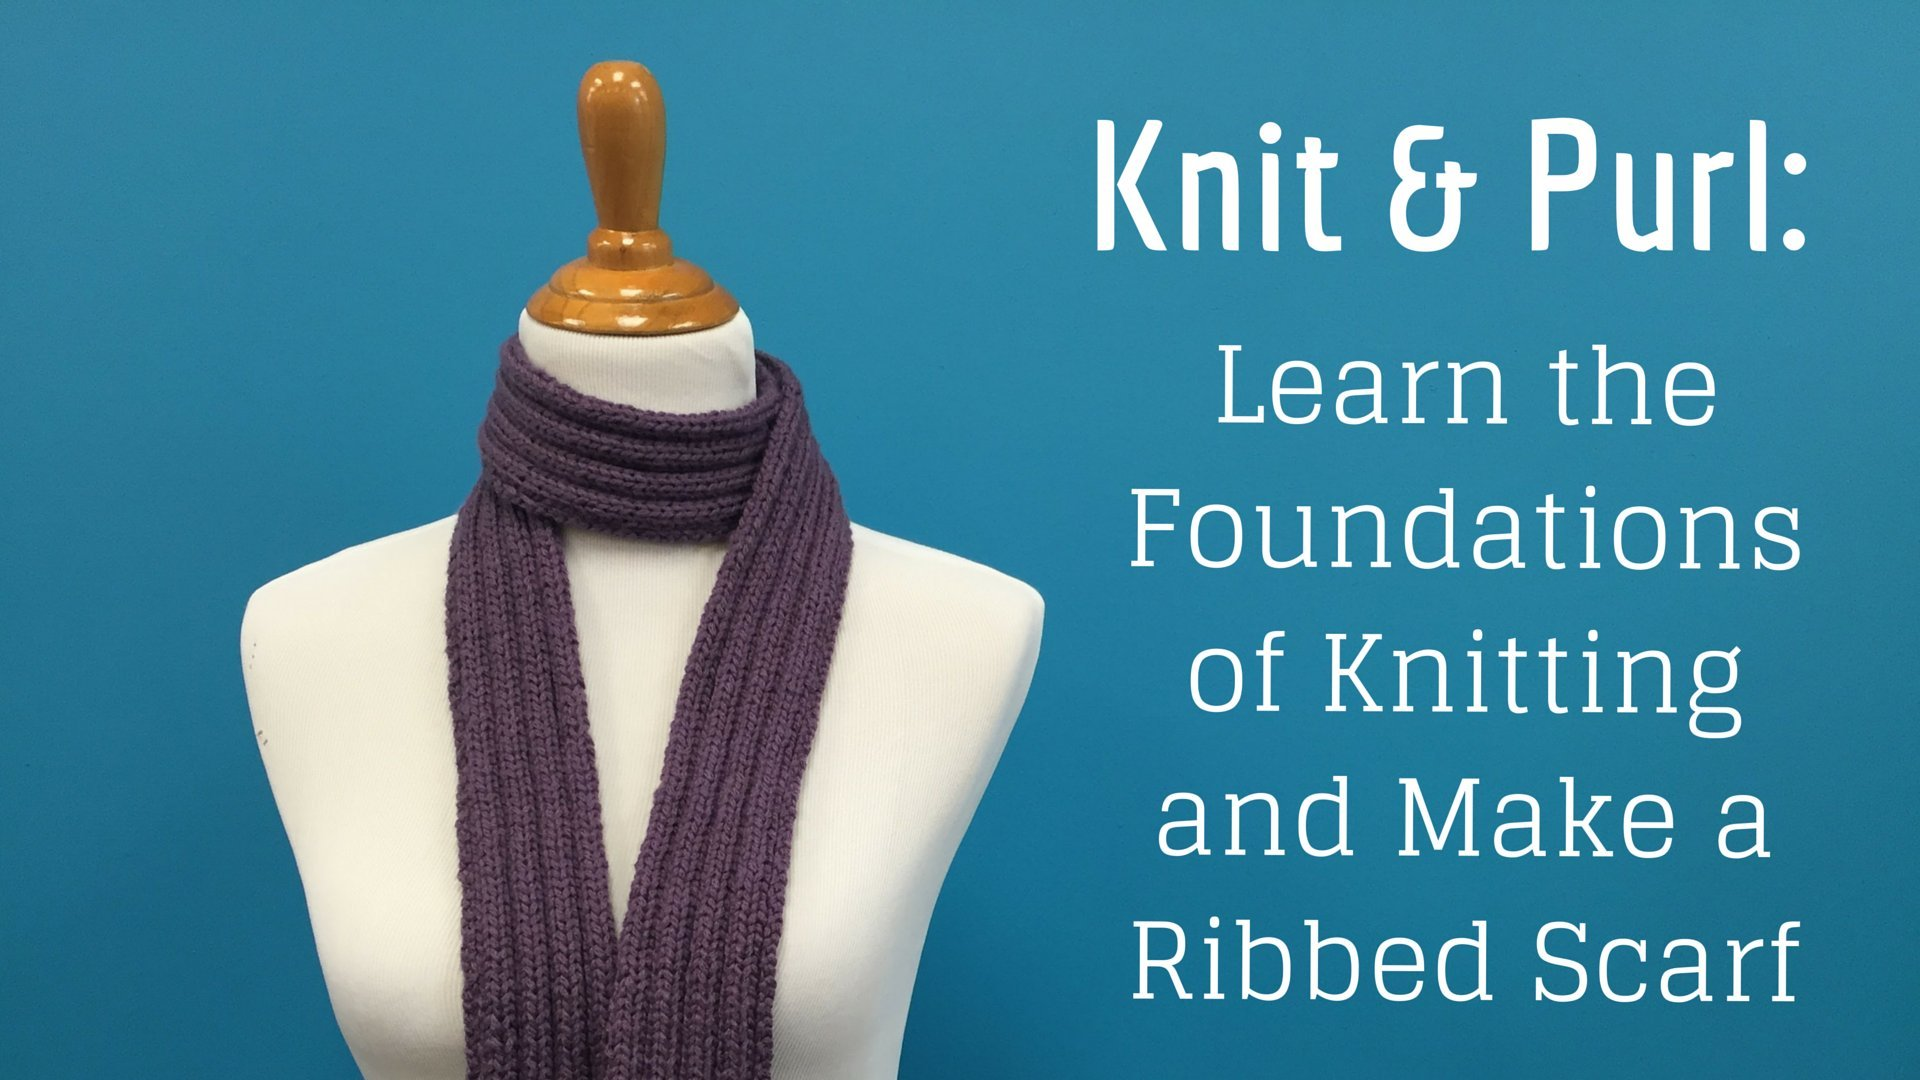 Knit And Purl Learn The Foundations Of Knitting While Making A